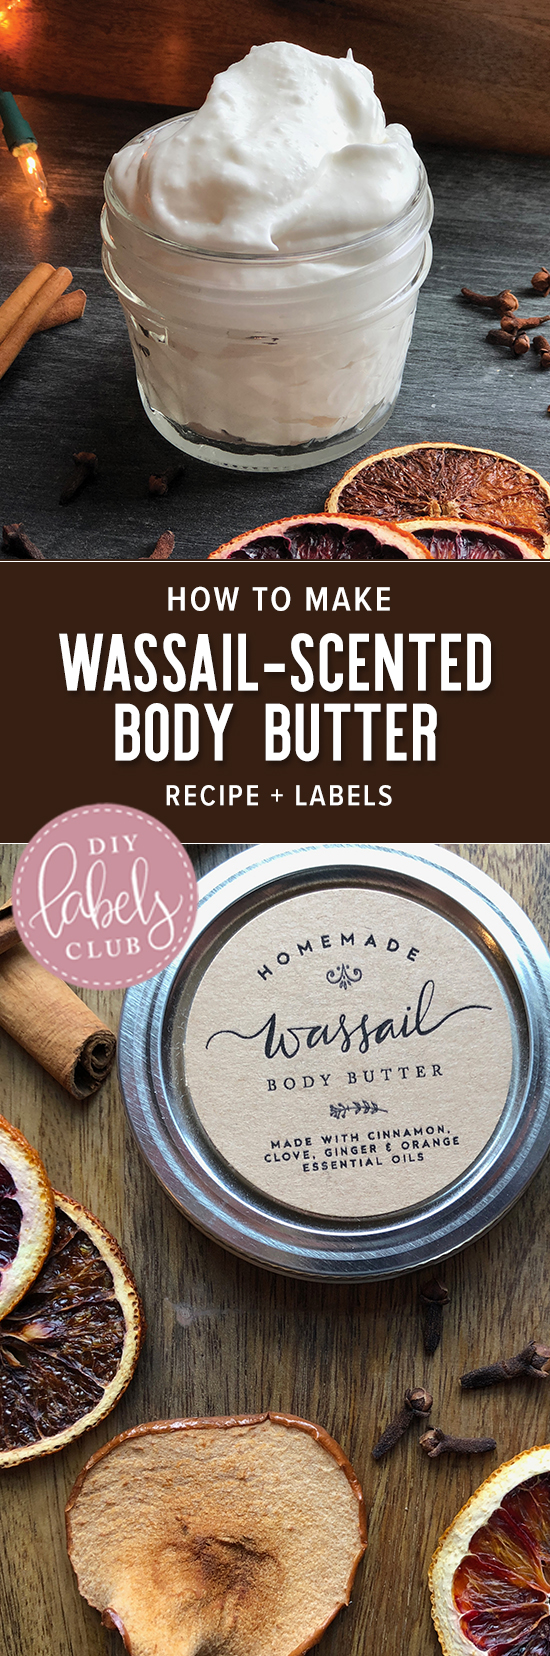 Wassail Body Butter Pinterest.jpg